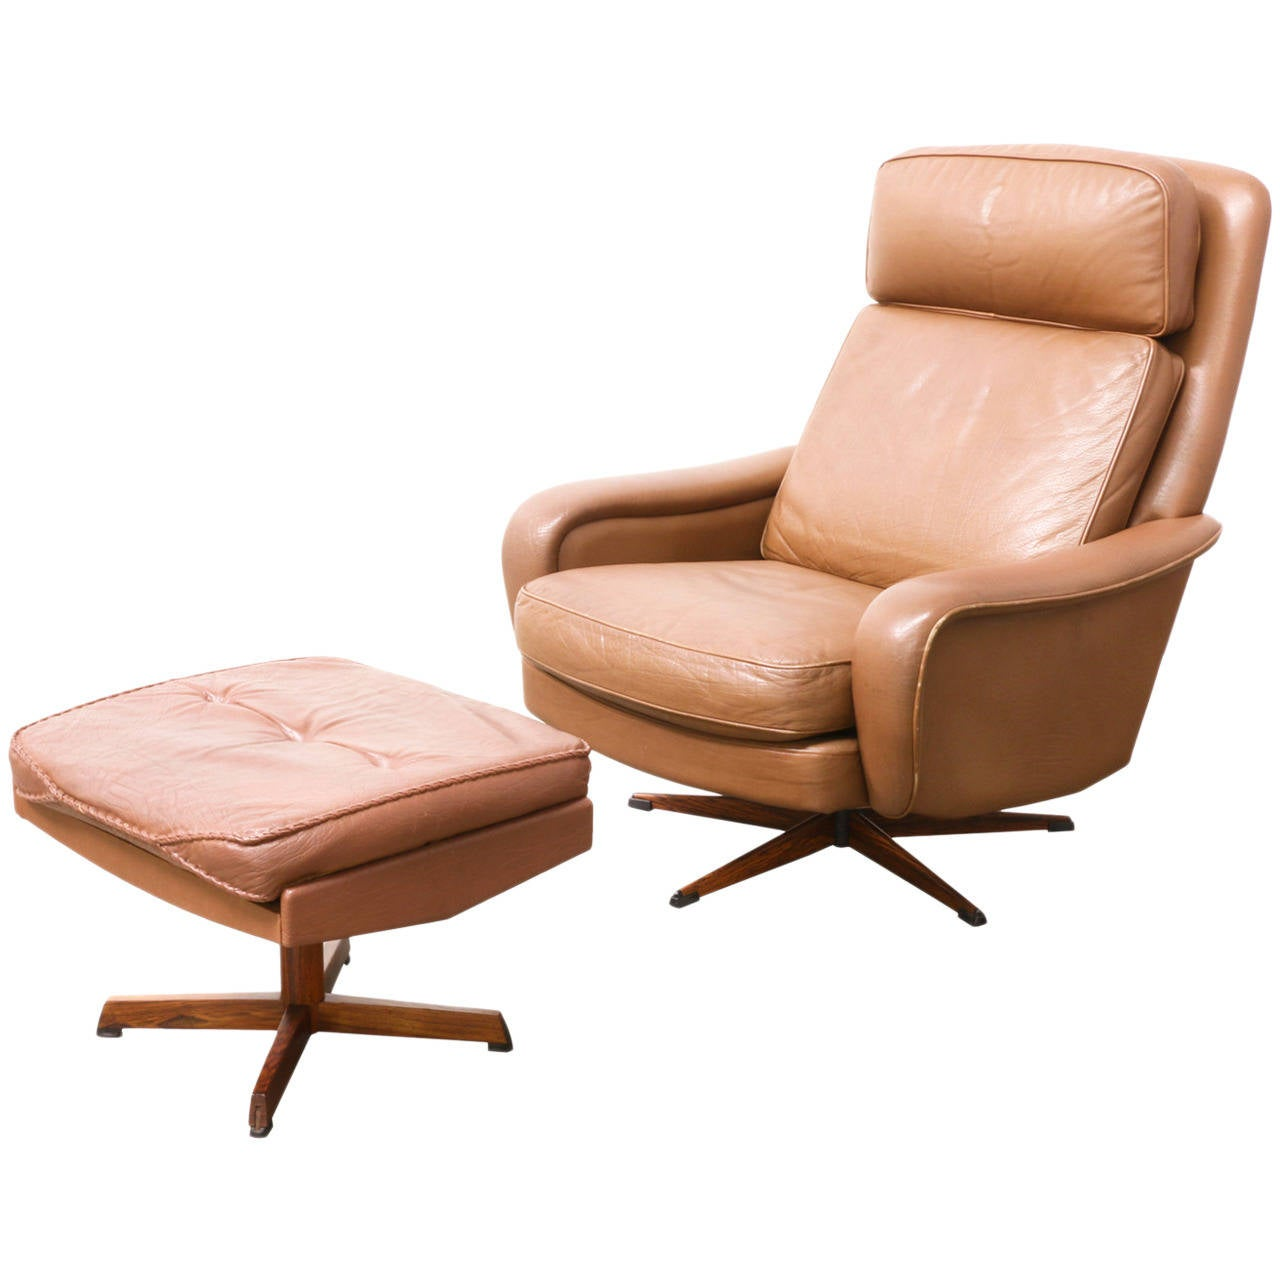 Danish Modern Leather Lounge Chair With Ottoman At 1stdibs